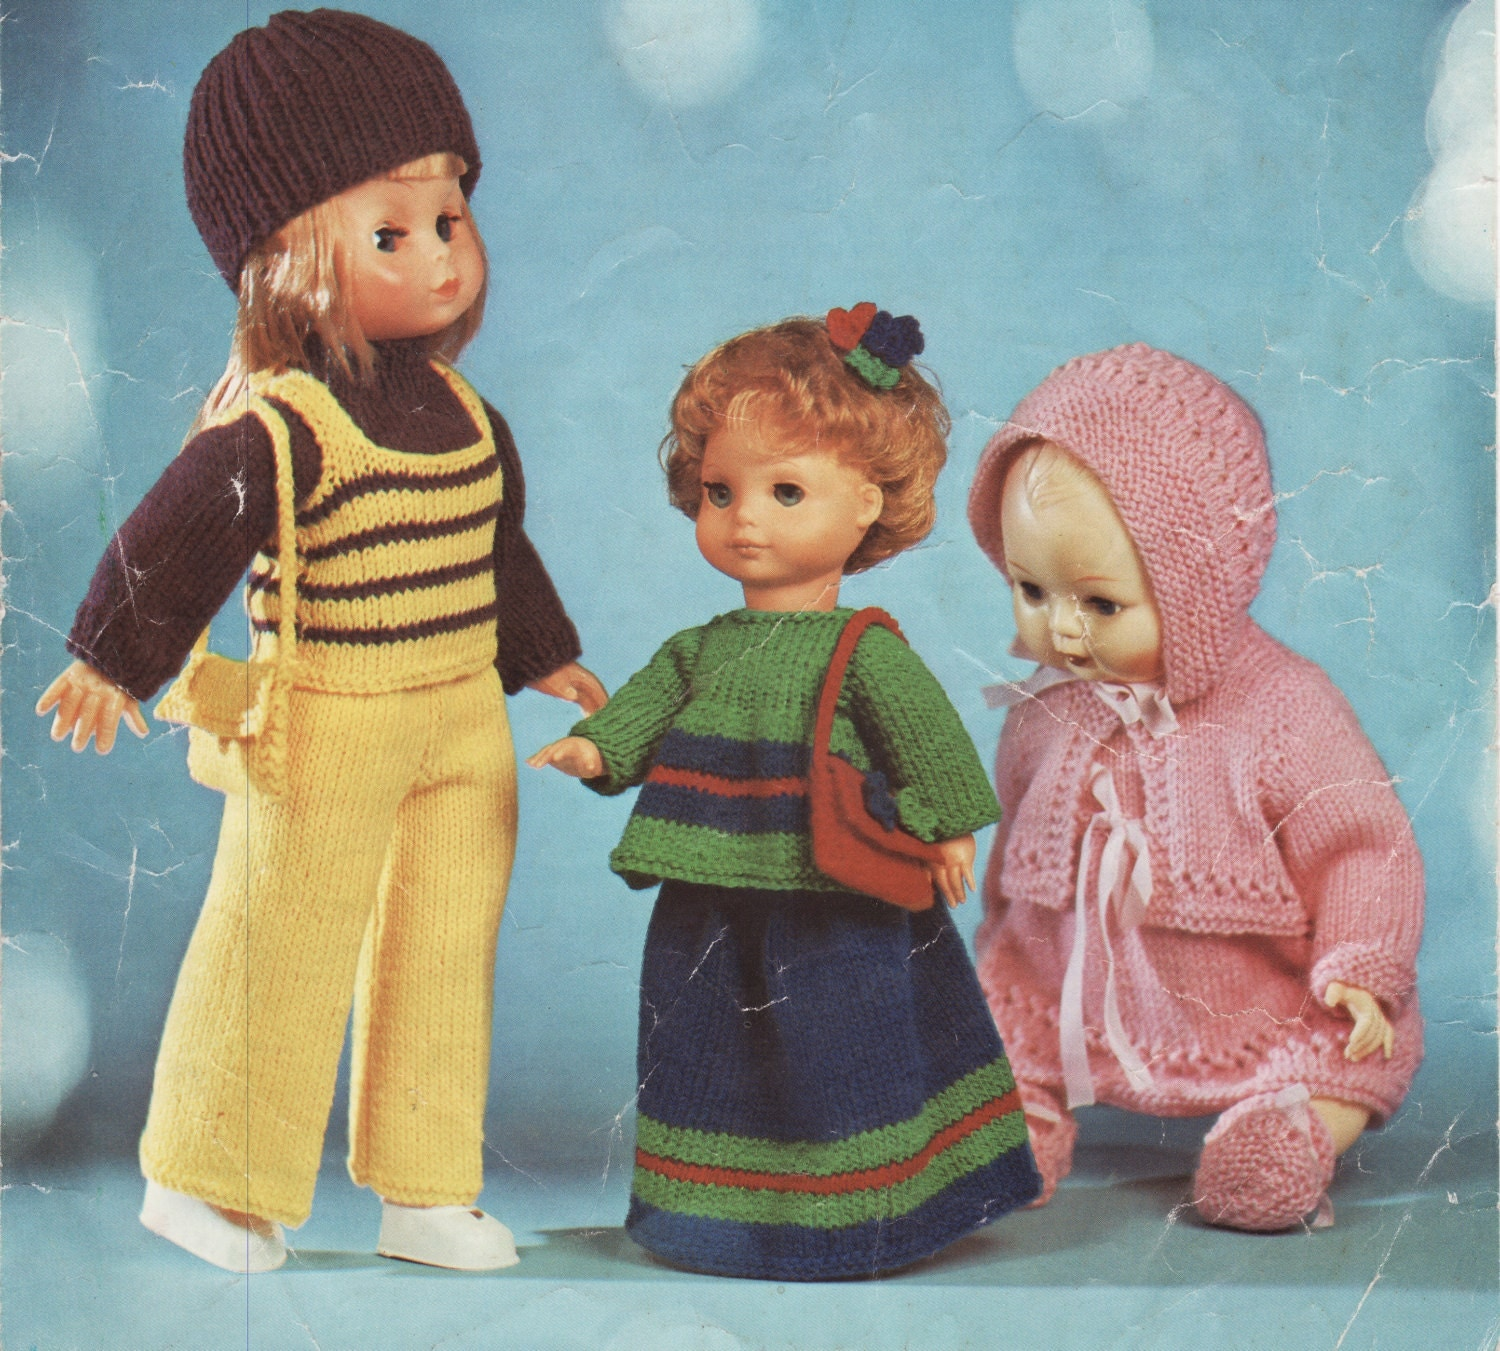 Knitting Patterns For Dolls Clothes 12 Inch : PDF Knitting Patterns, Knitted Dolls Clothes,12 inch doll ...